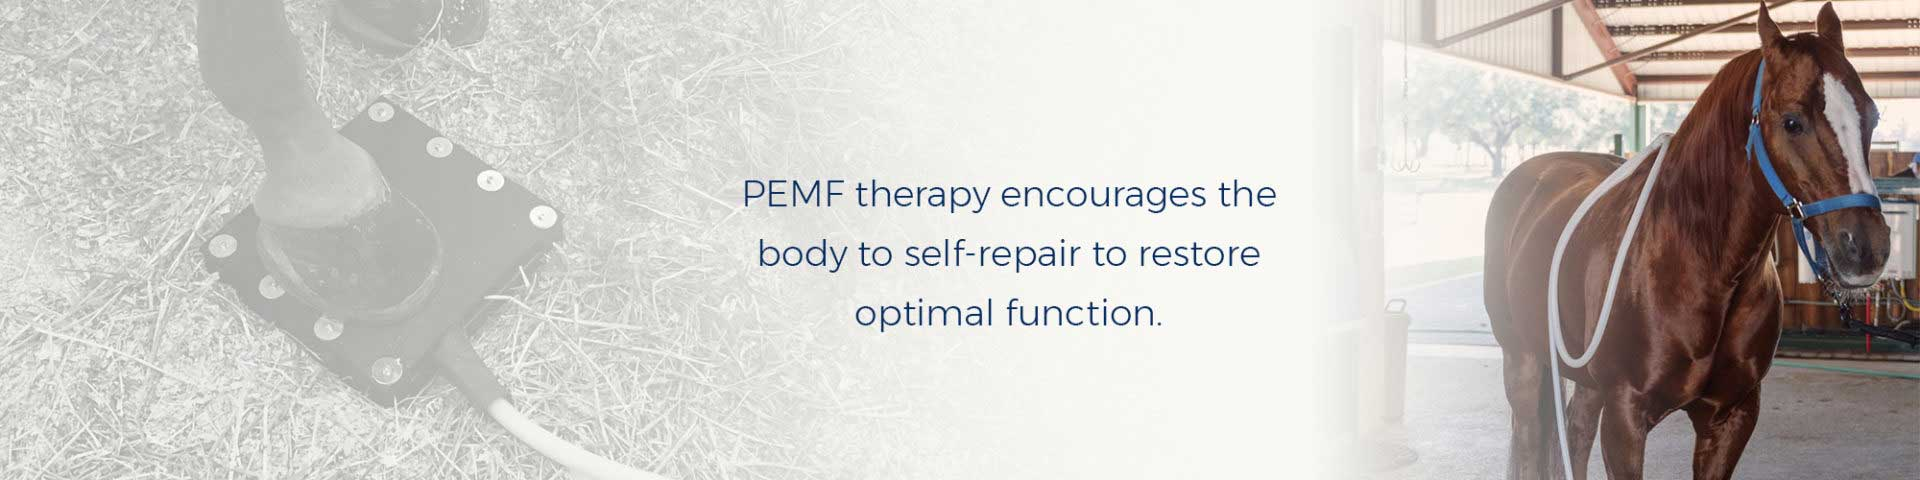 PEMF therapy encourages the body to self-repair to restore optimal function.